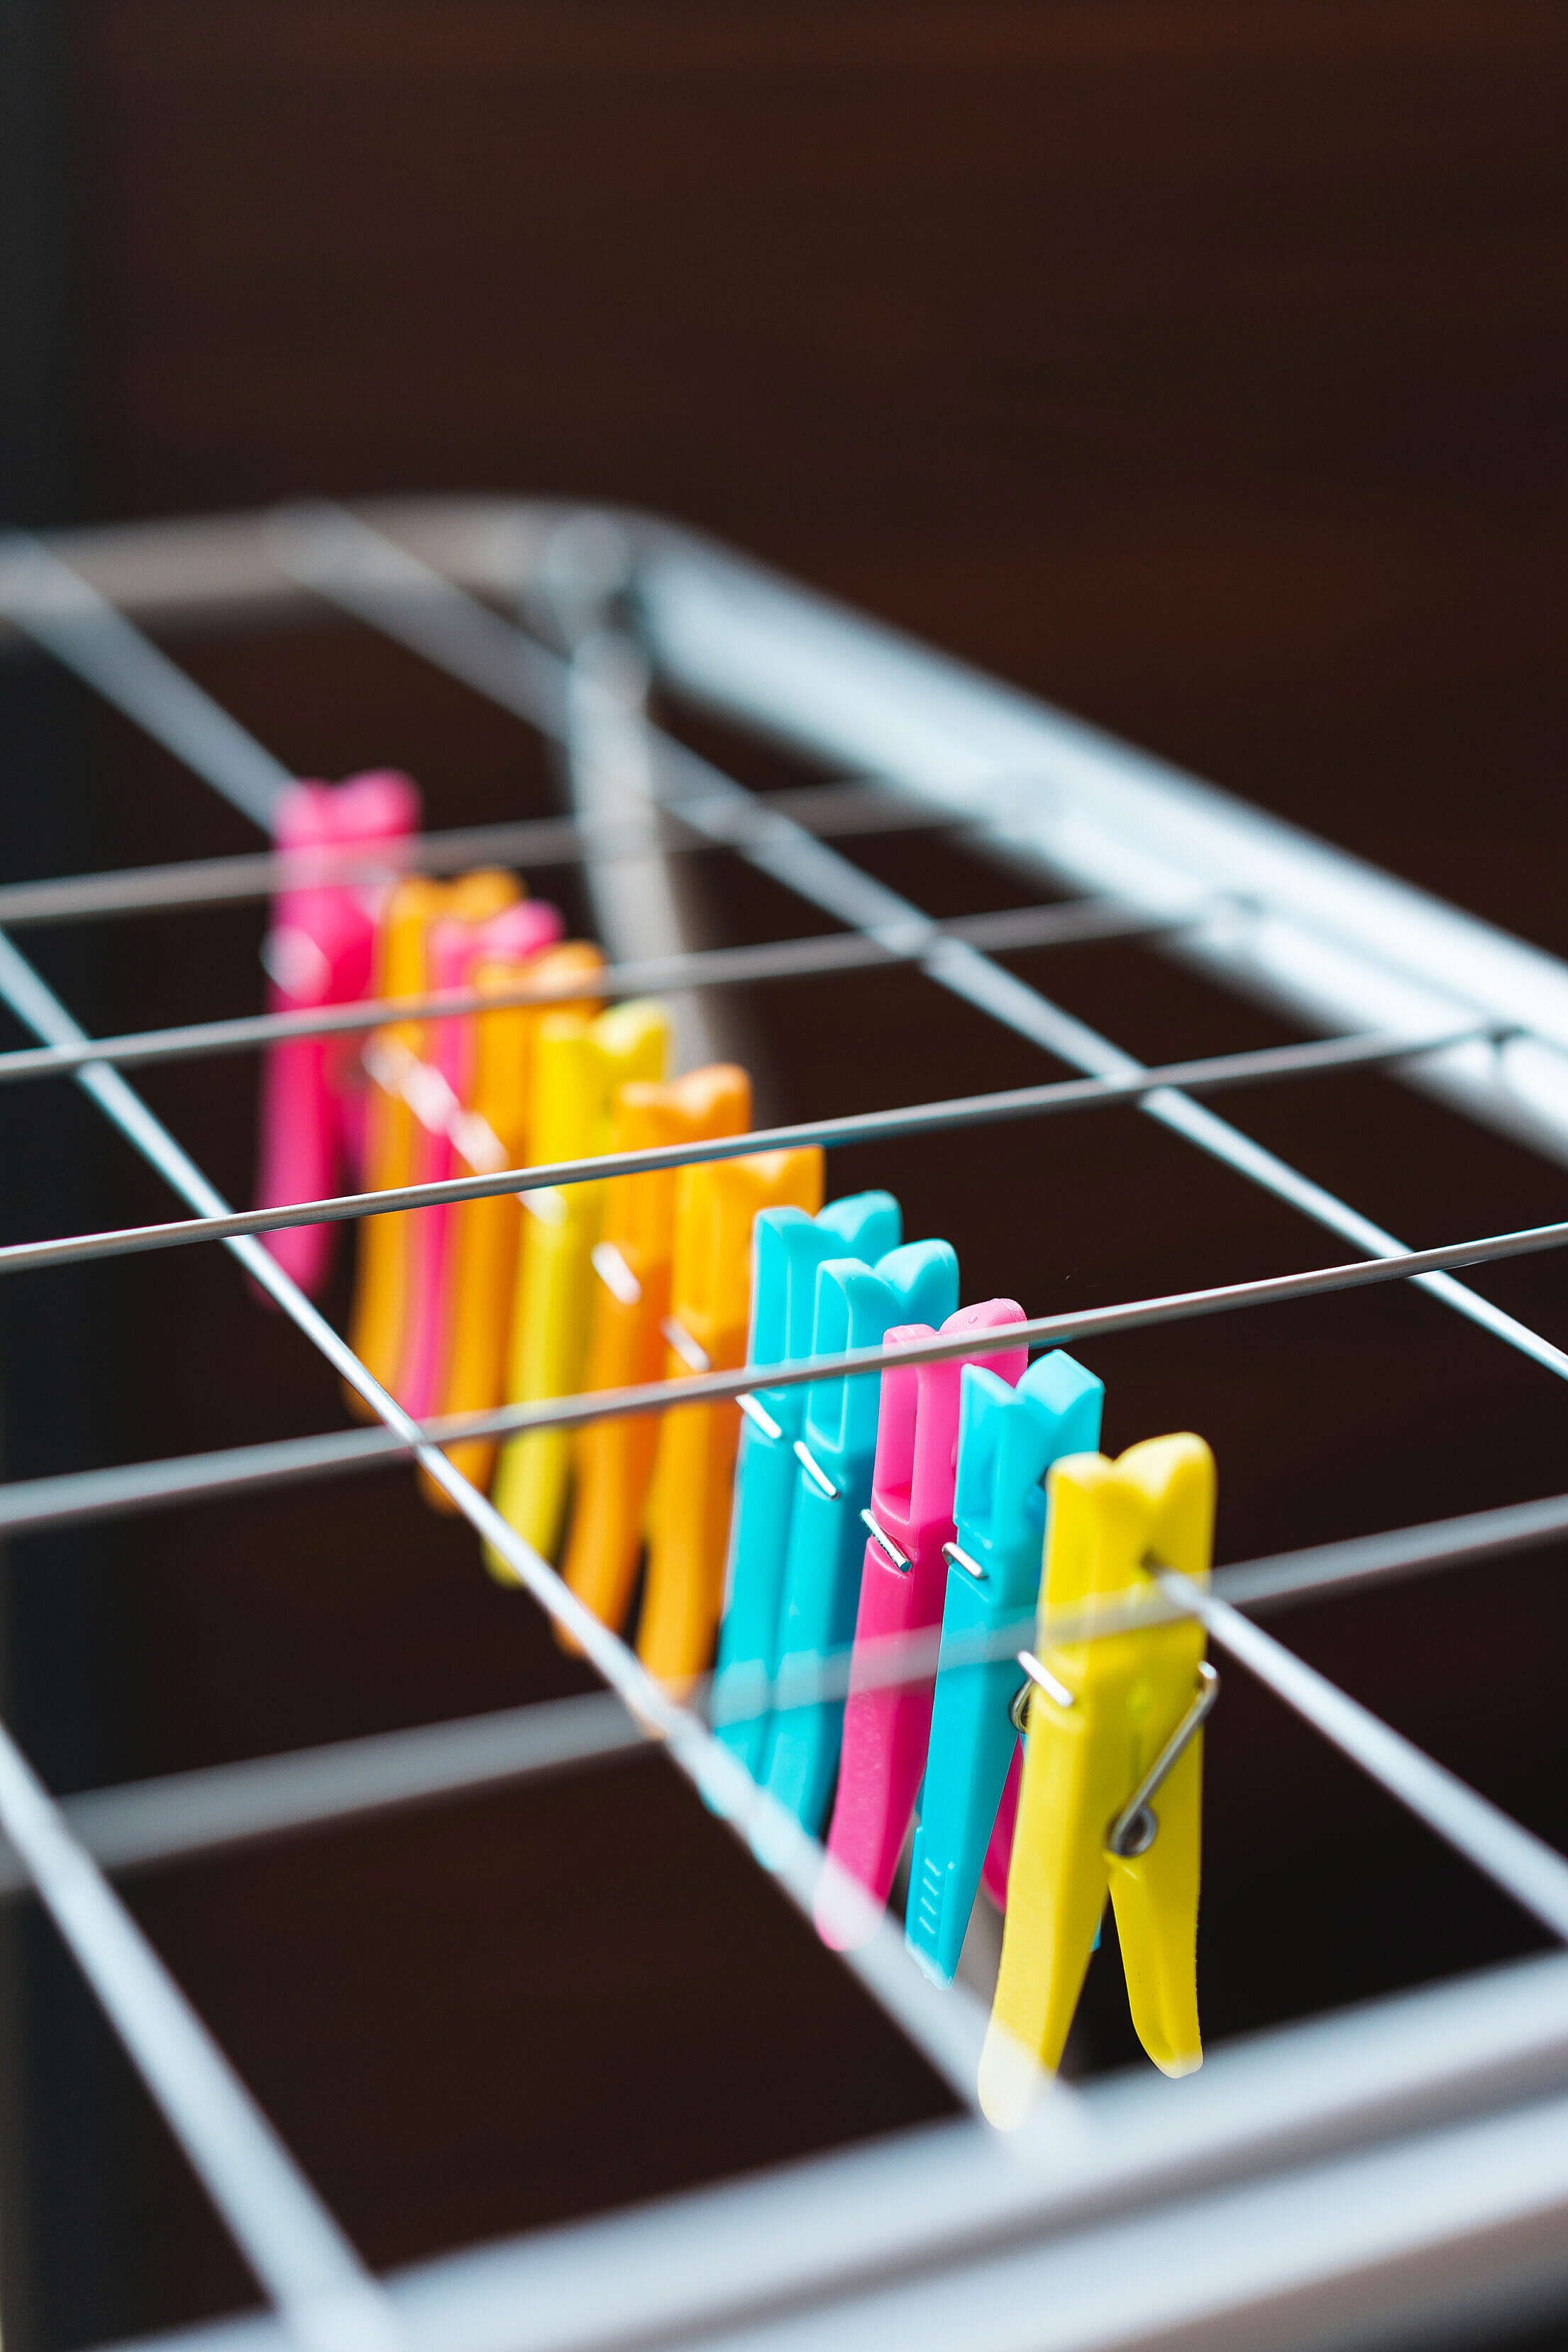 Clothes Dryer with Color Plastic Pegs Free Stock Photo